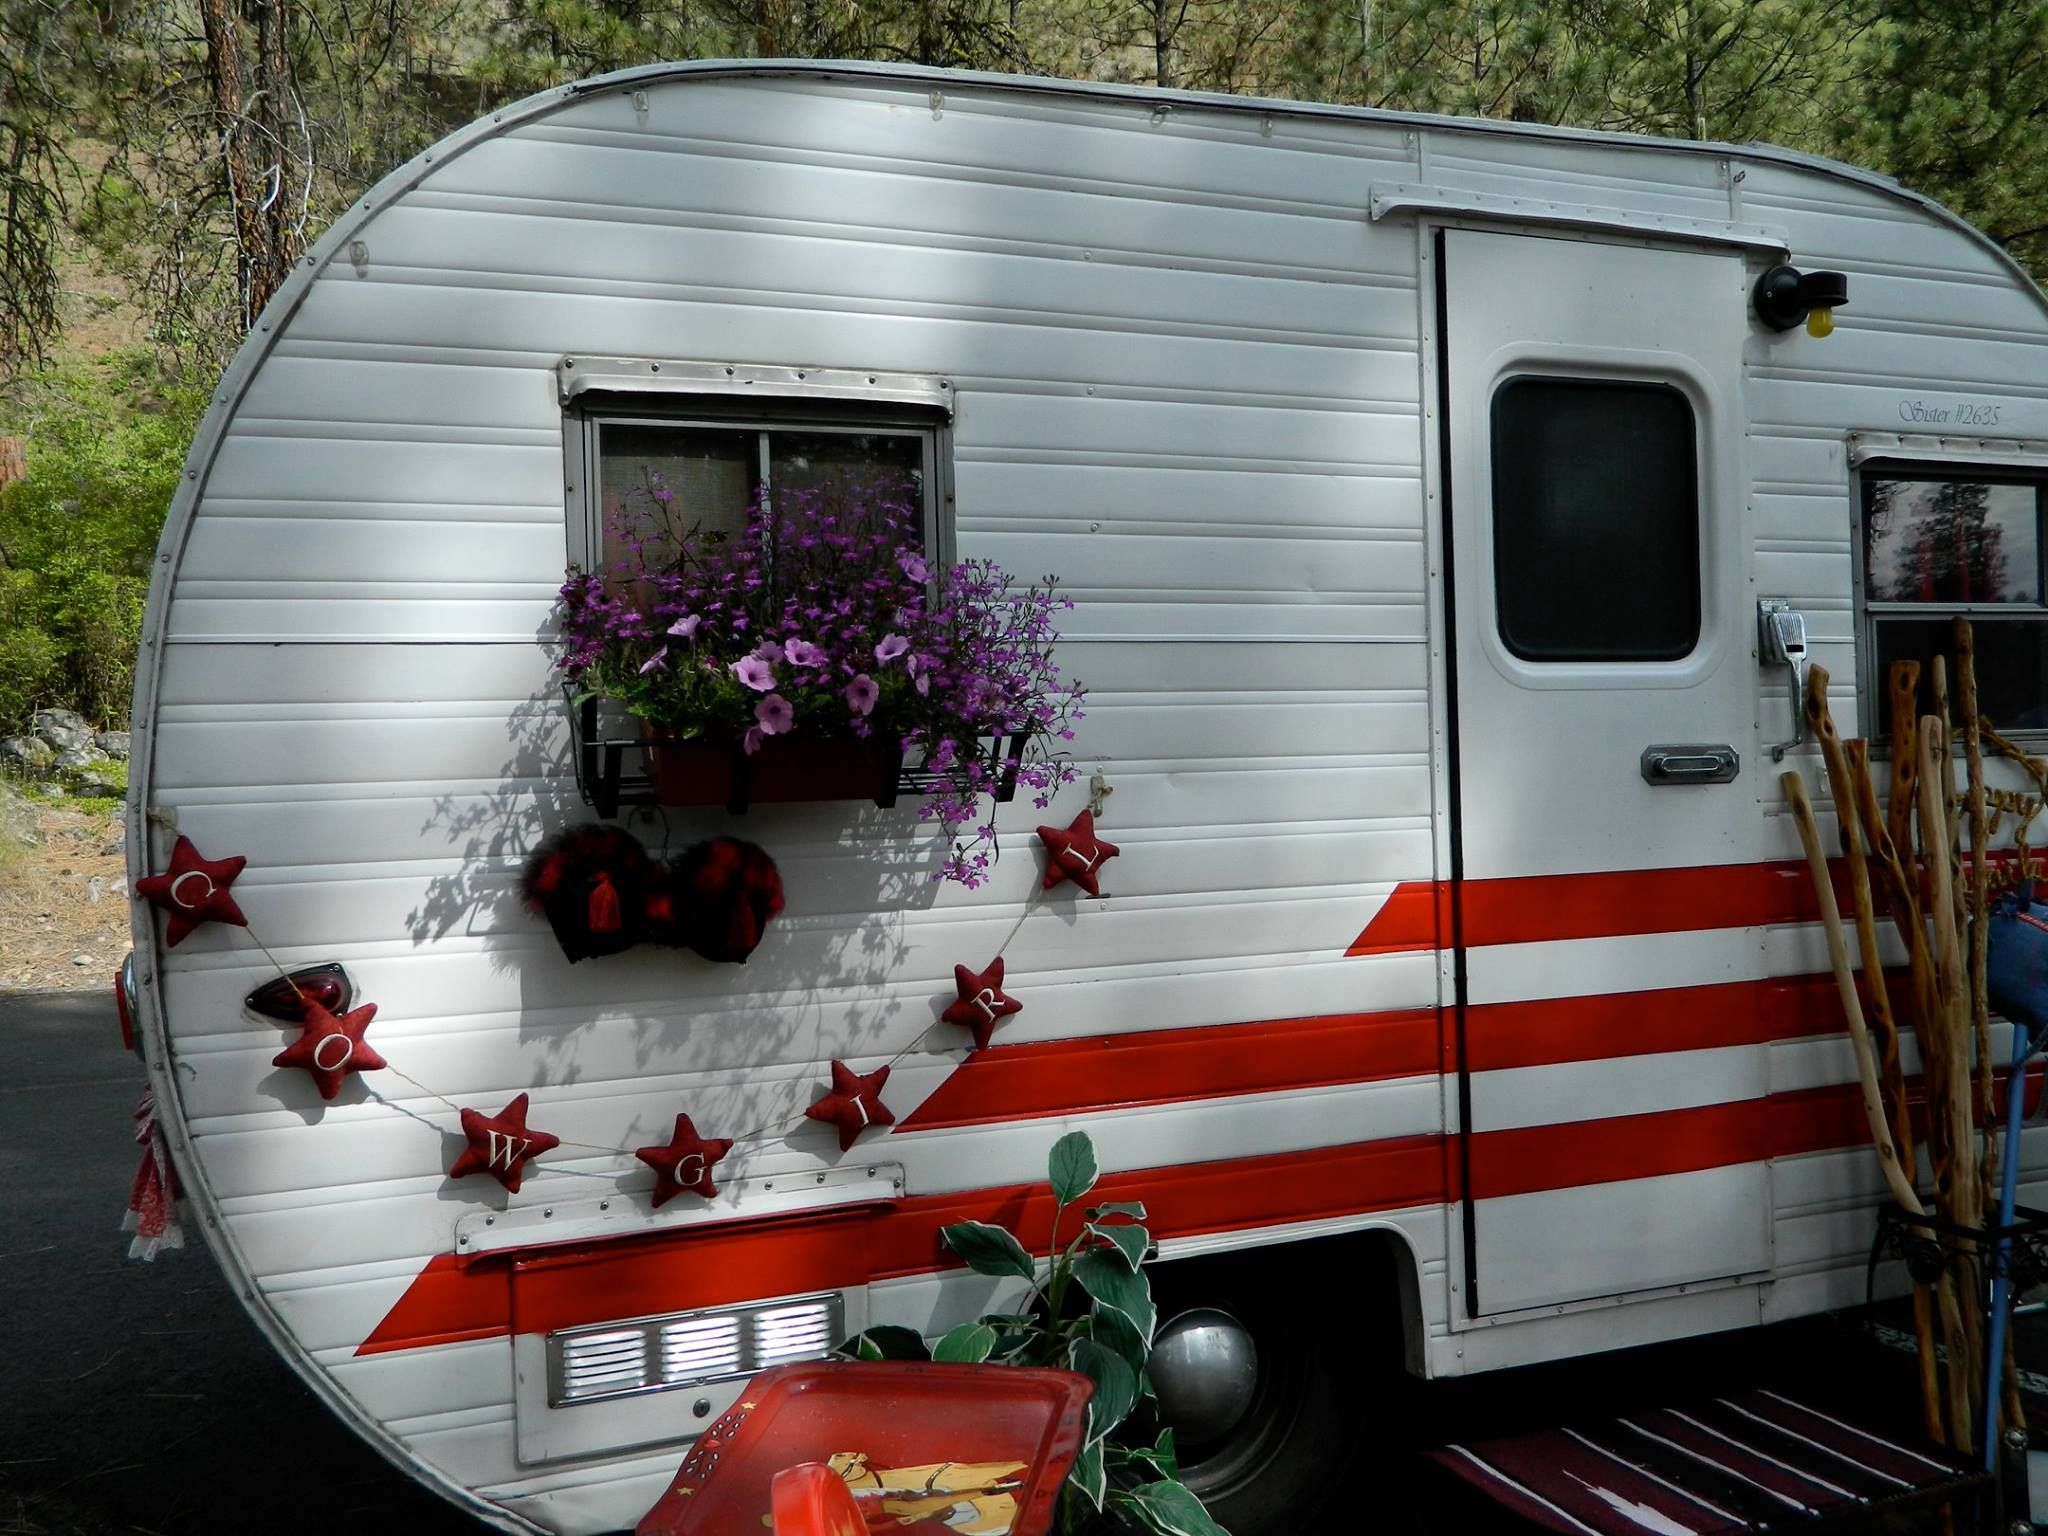 Pin On Vintage Trailers And Glamping